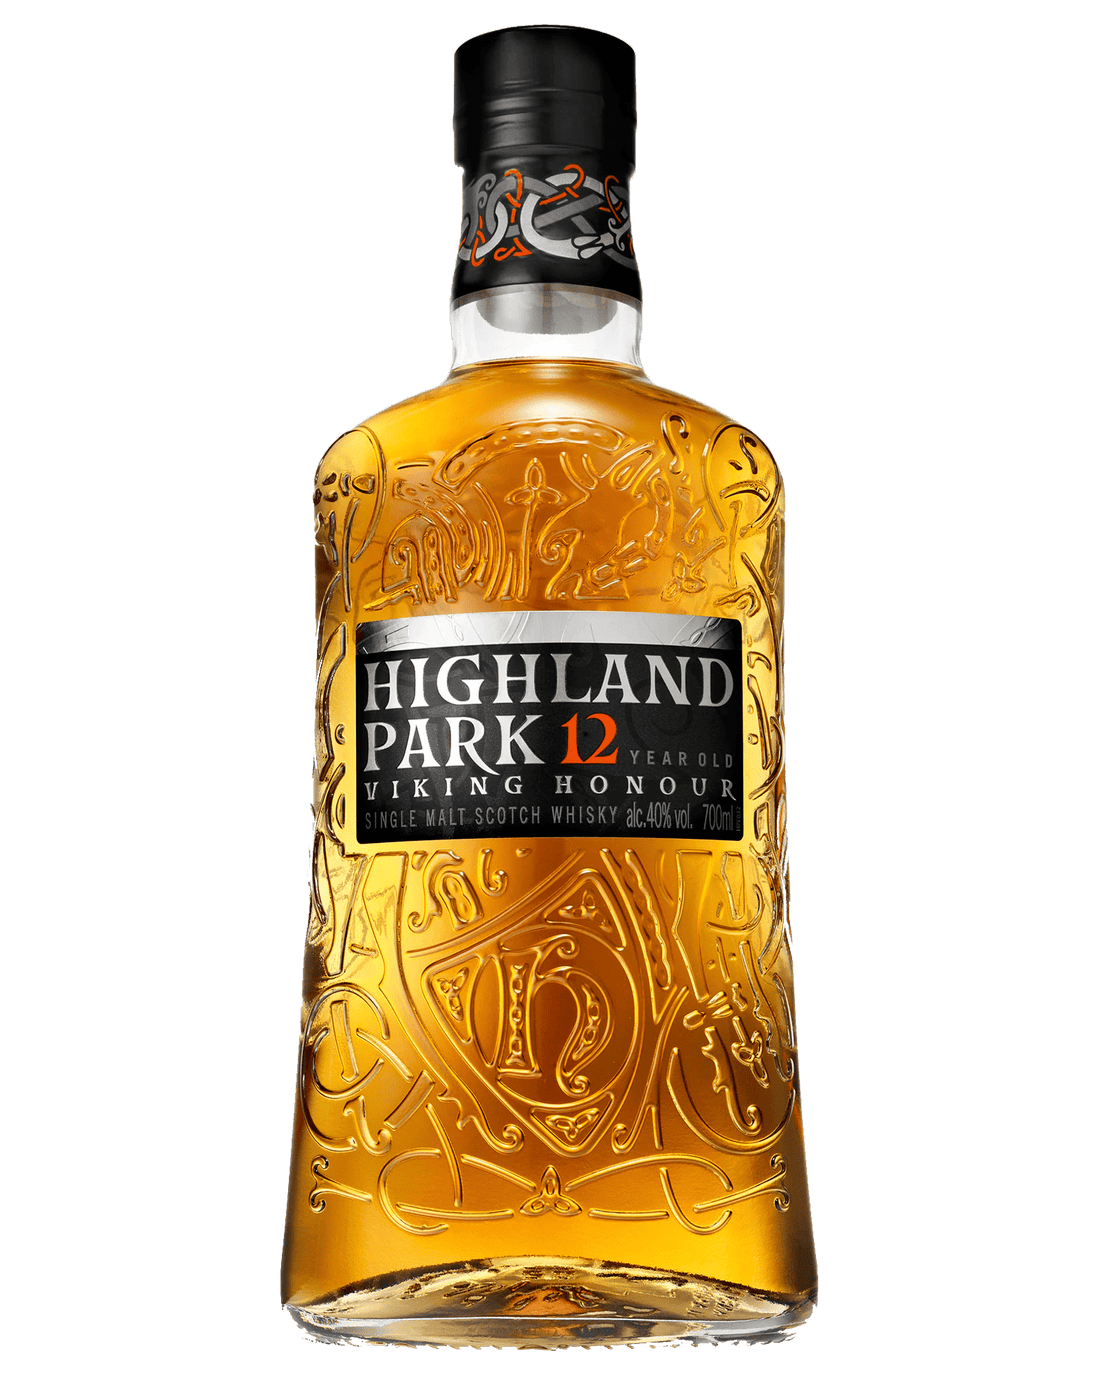 Highland Park Viking Honour 12 Year Old Single Malt Scotch Whisky (700ml)